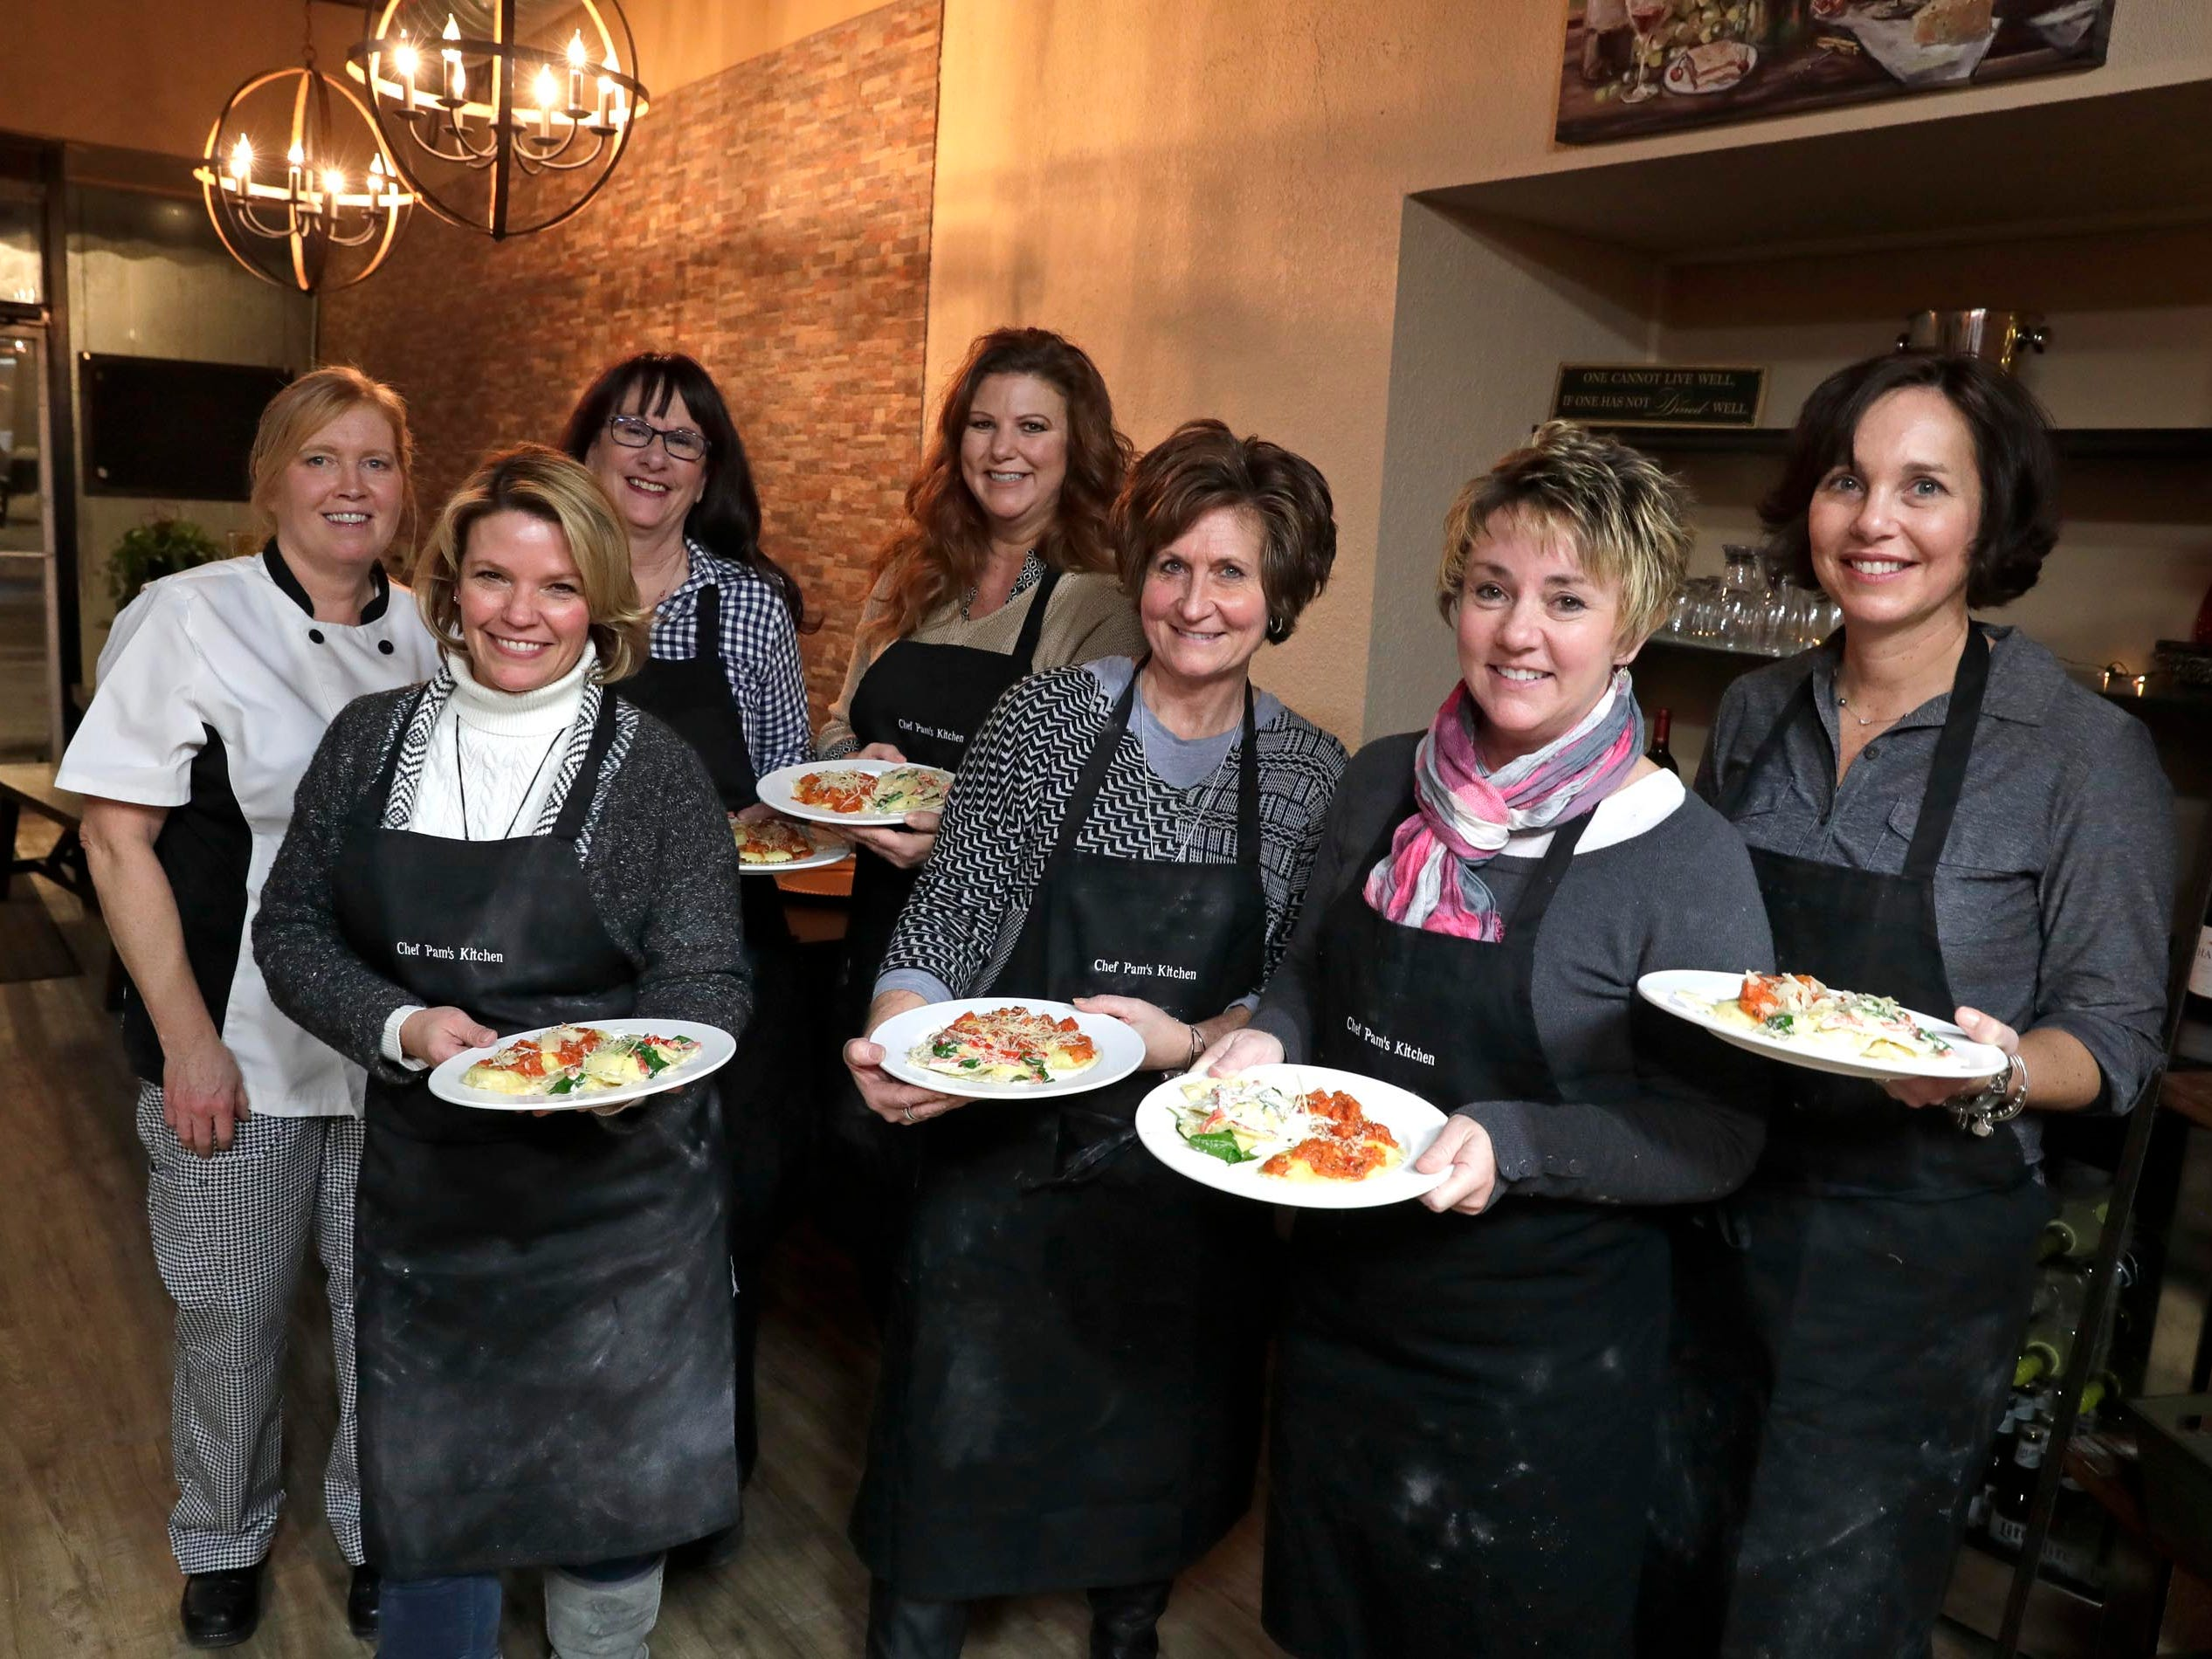 Class is finished! From left: chef-instructor Pam Dennis, Wendy Minor, Marty Gibson, Chris Liedtke, Kim Perreault, Lori Cieslik and Beth Zeiler.